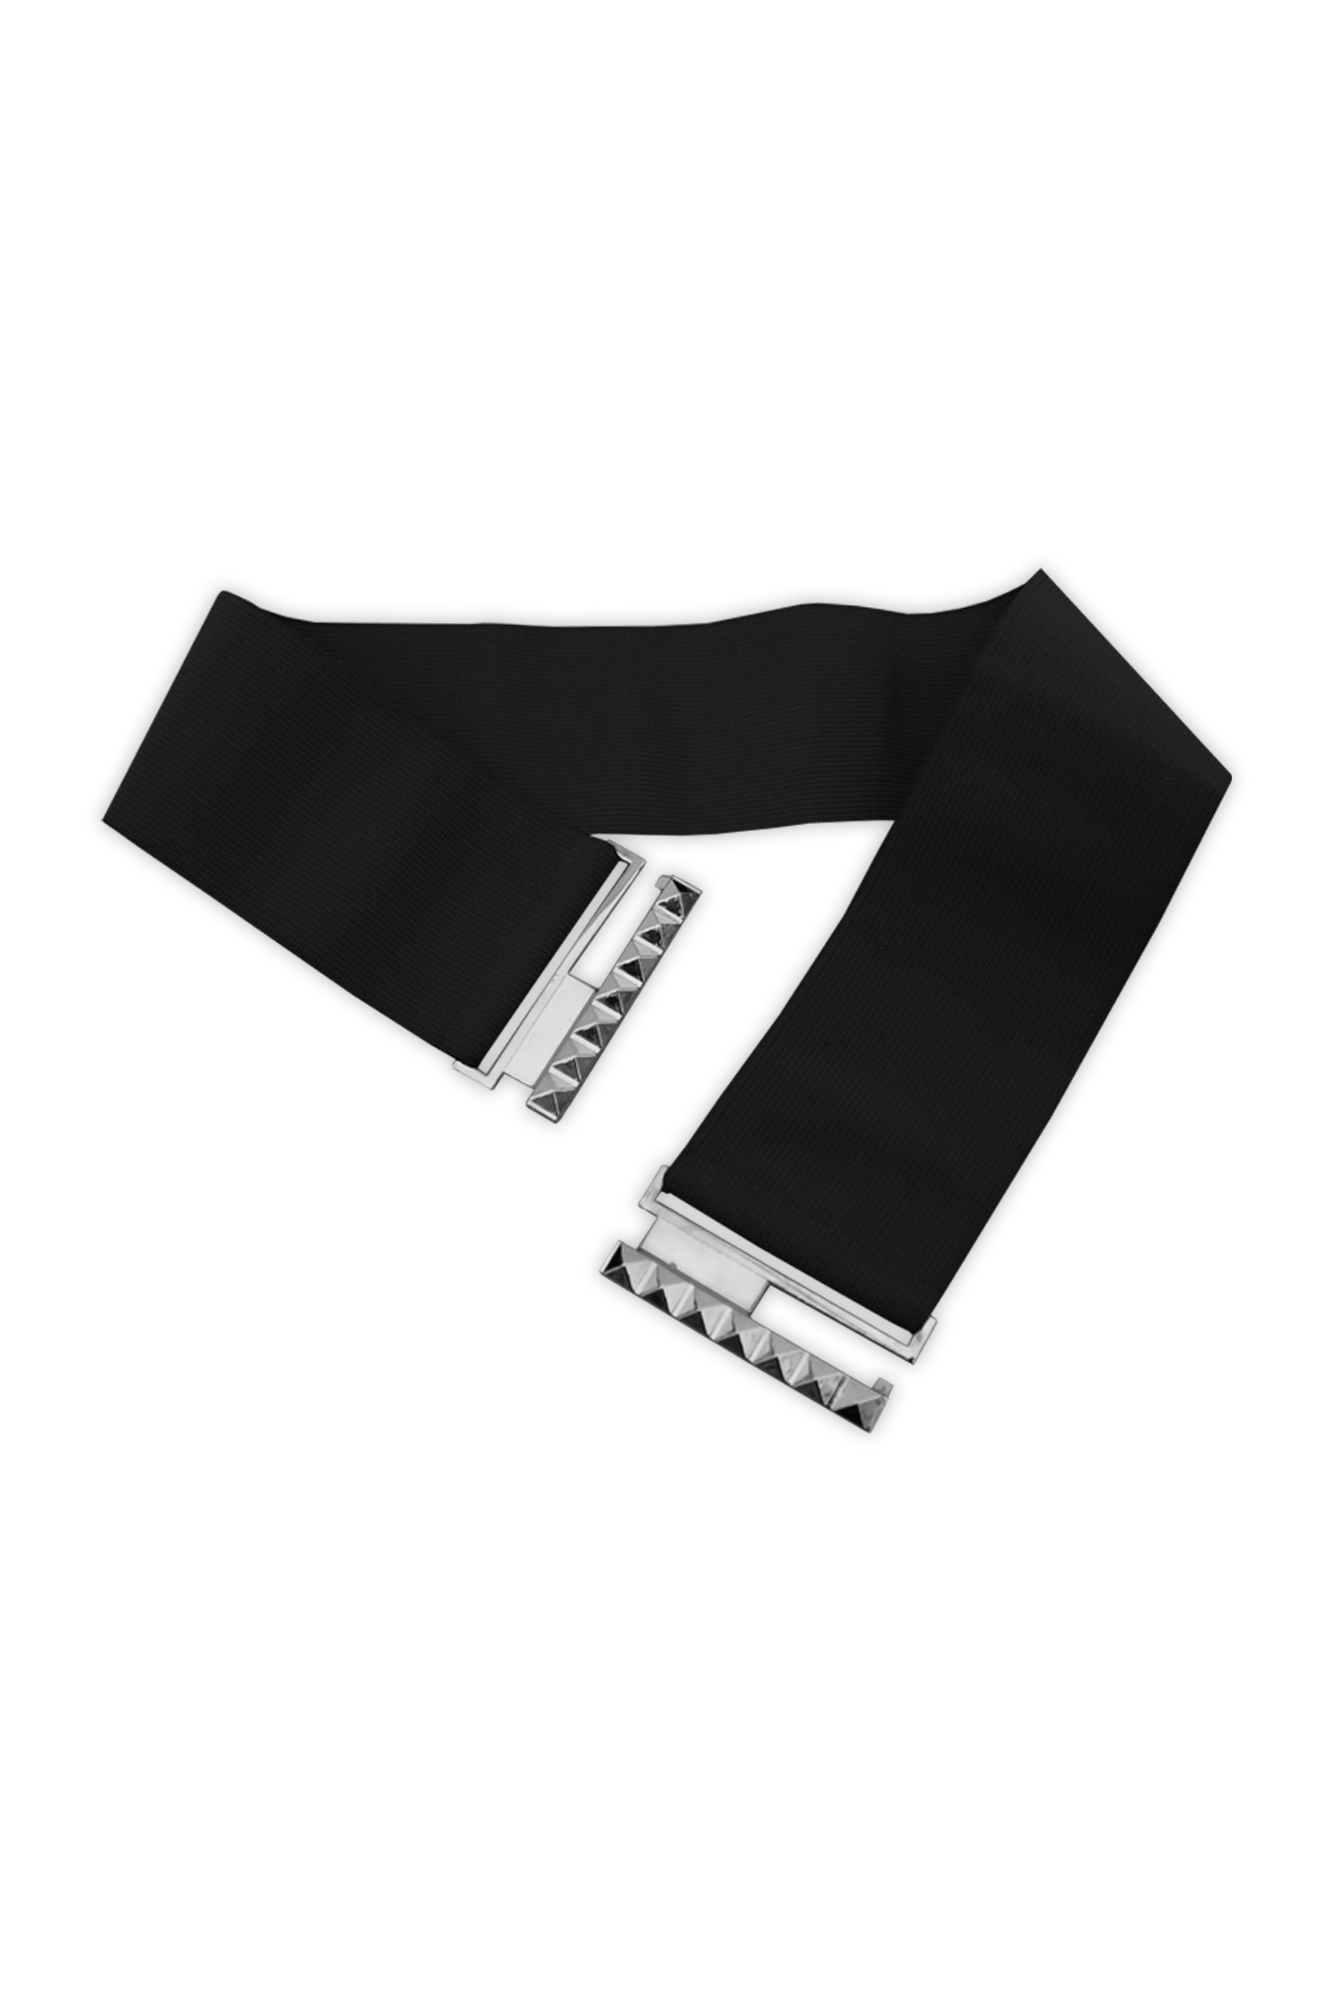 NEW BLACK RED WHITE 3 INCH WIDE ELASTIC WAIST BELT SIZE 6-32